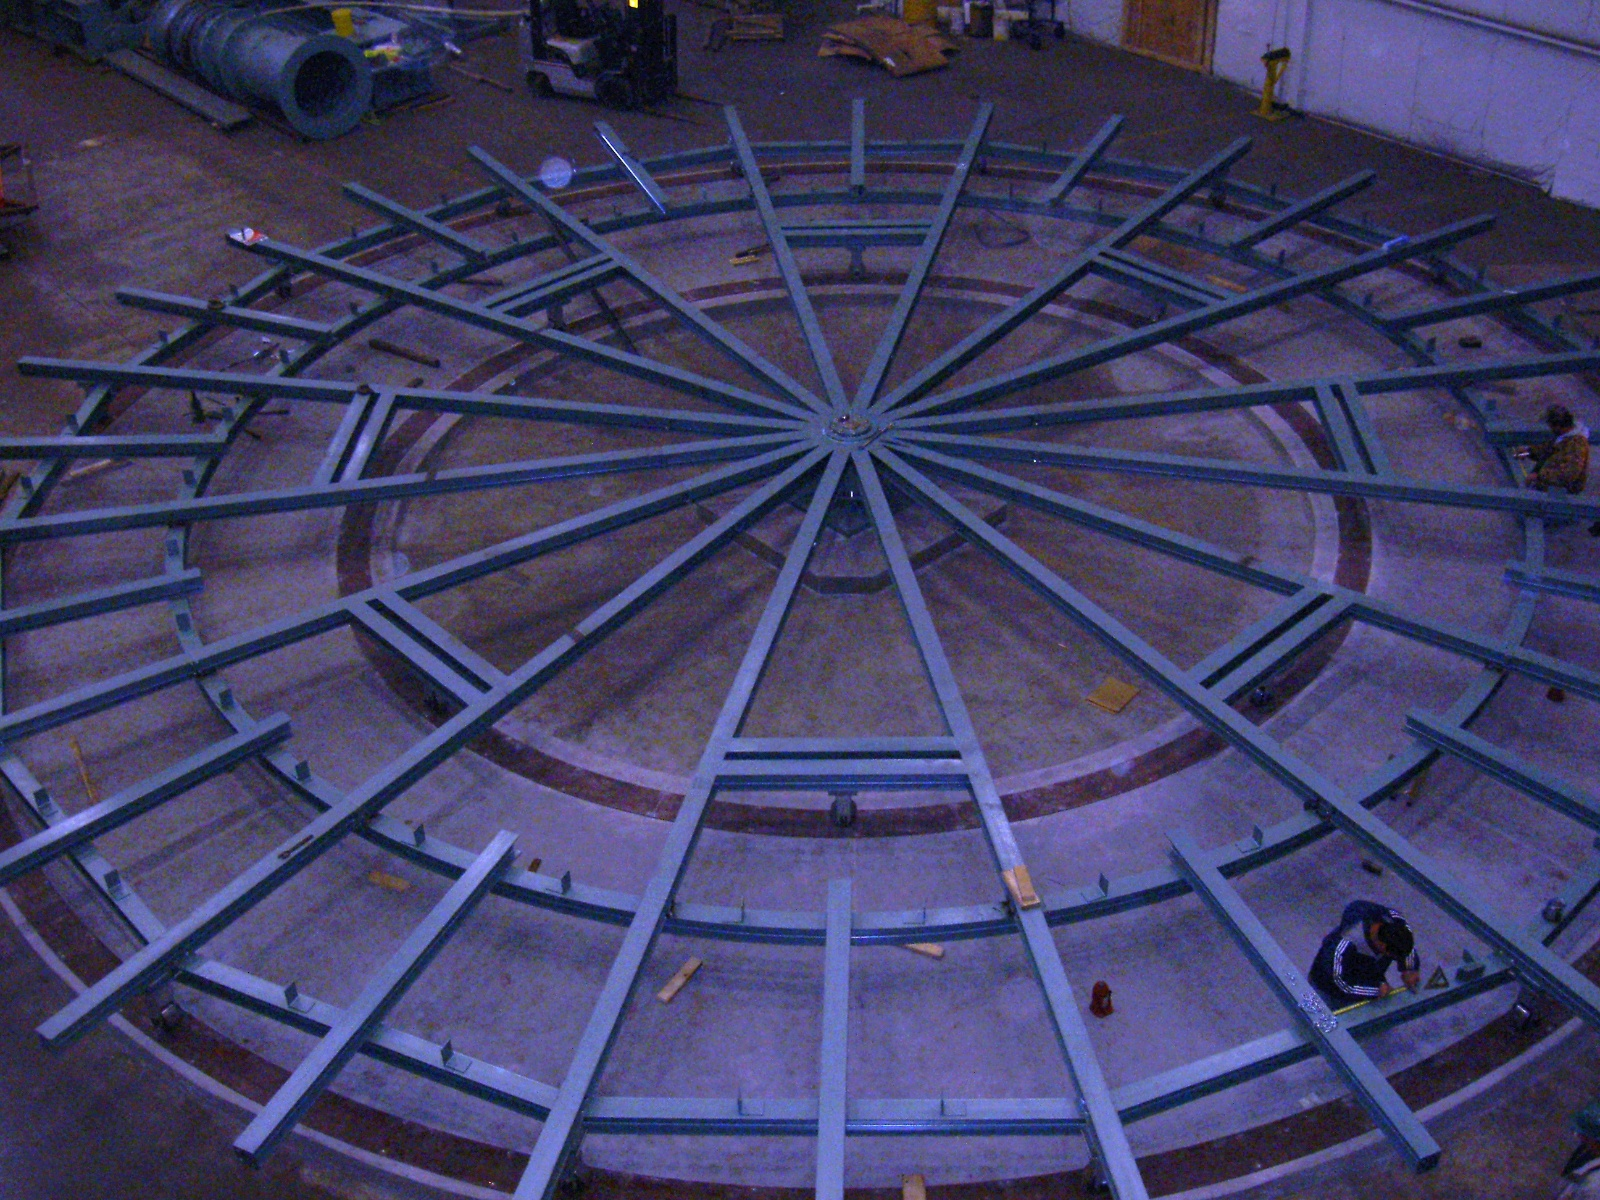 Specialty projects from ACE Building Service includes carousel foundation construction